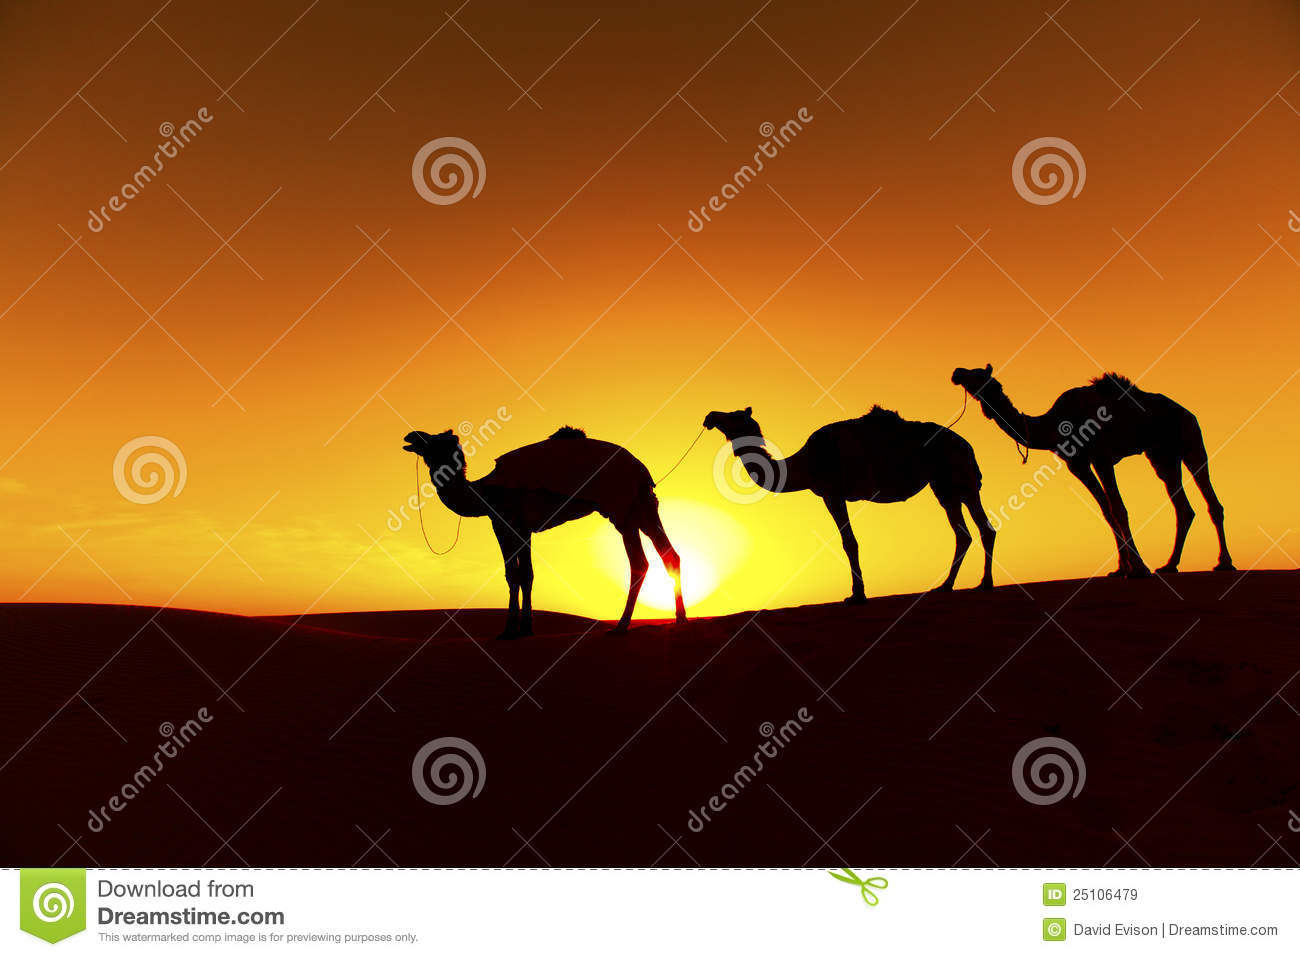 Camel Train clipart #9, Download drawings